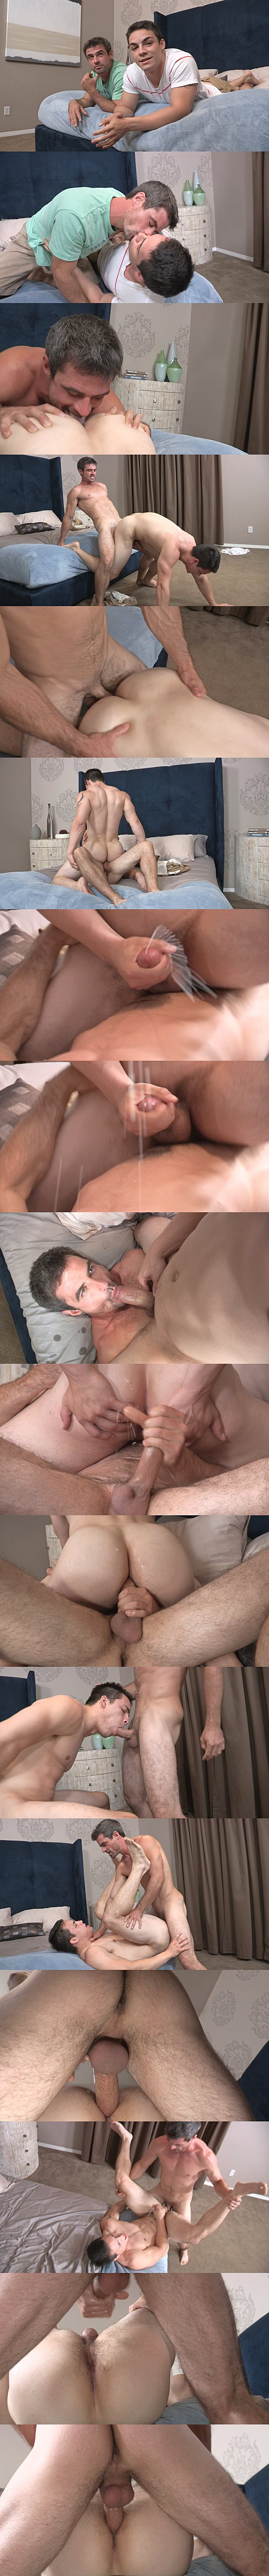 Daniel barebacks Ollie's tight ass before he fucks two big loads out of Ollie and breeds Ollie twice at Seancody 02